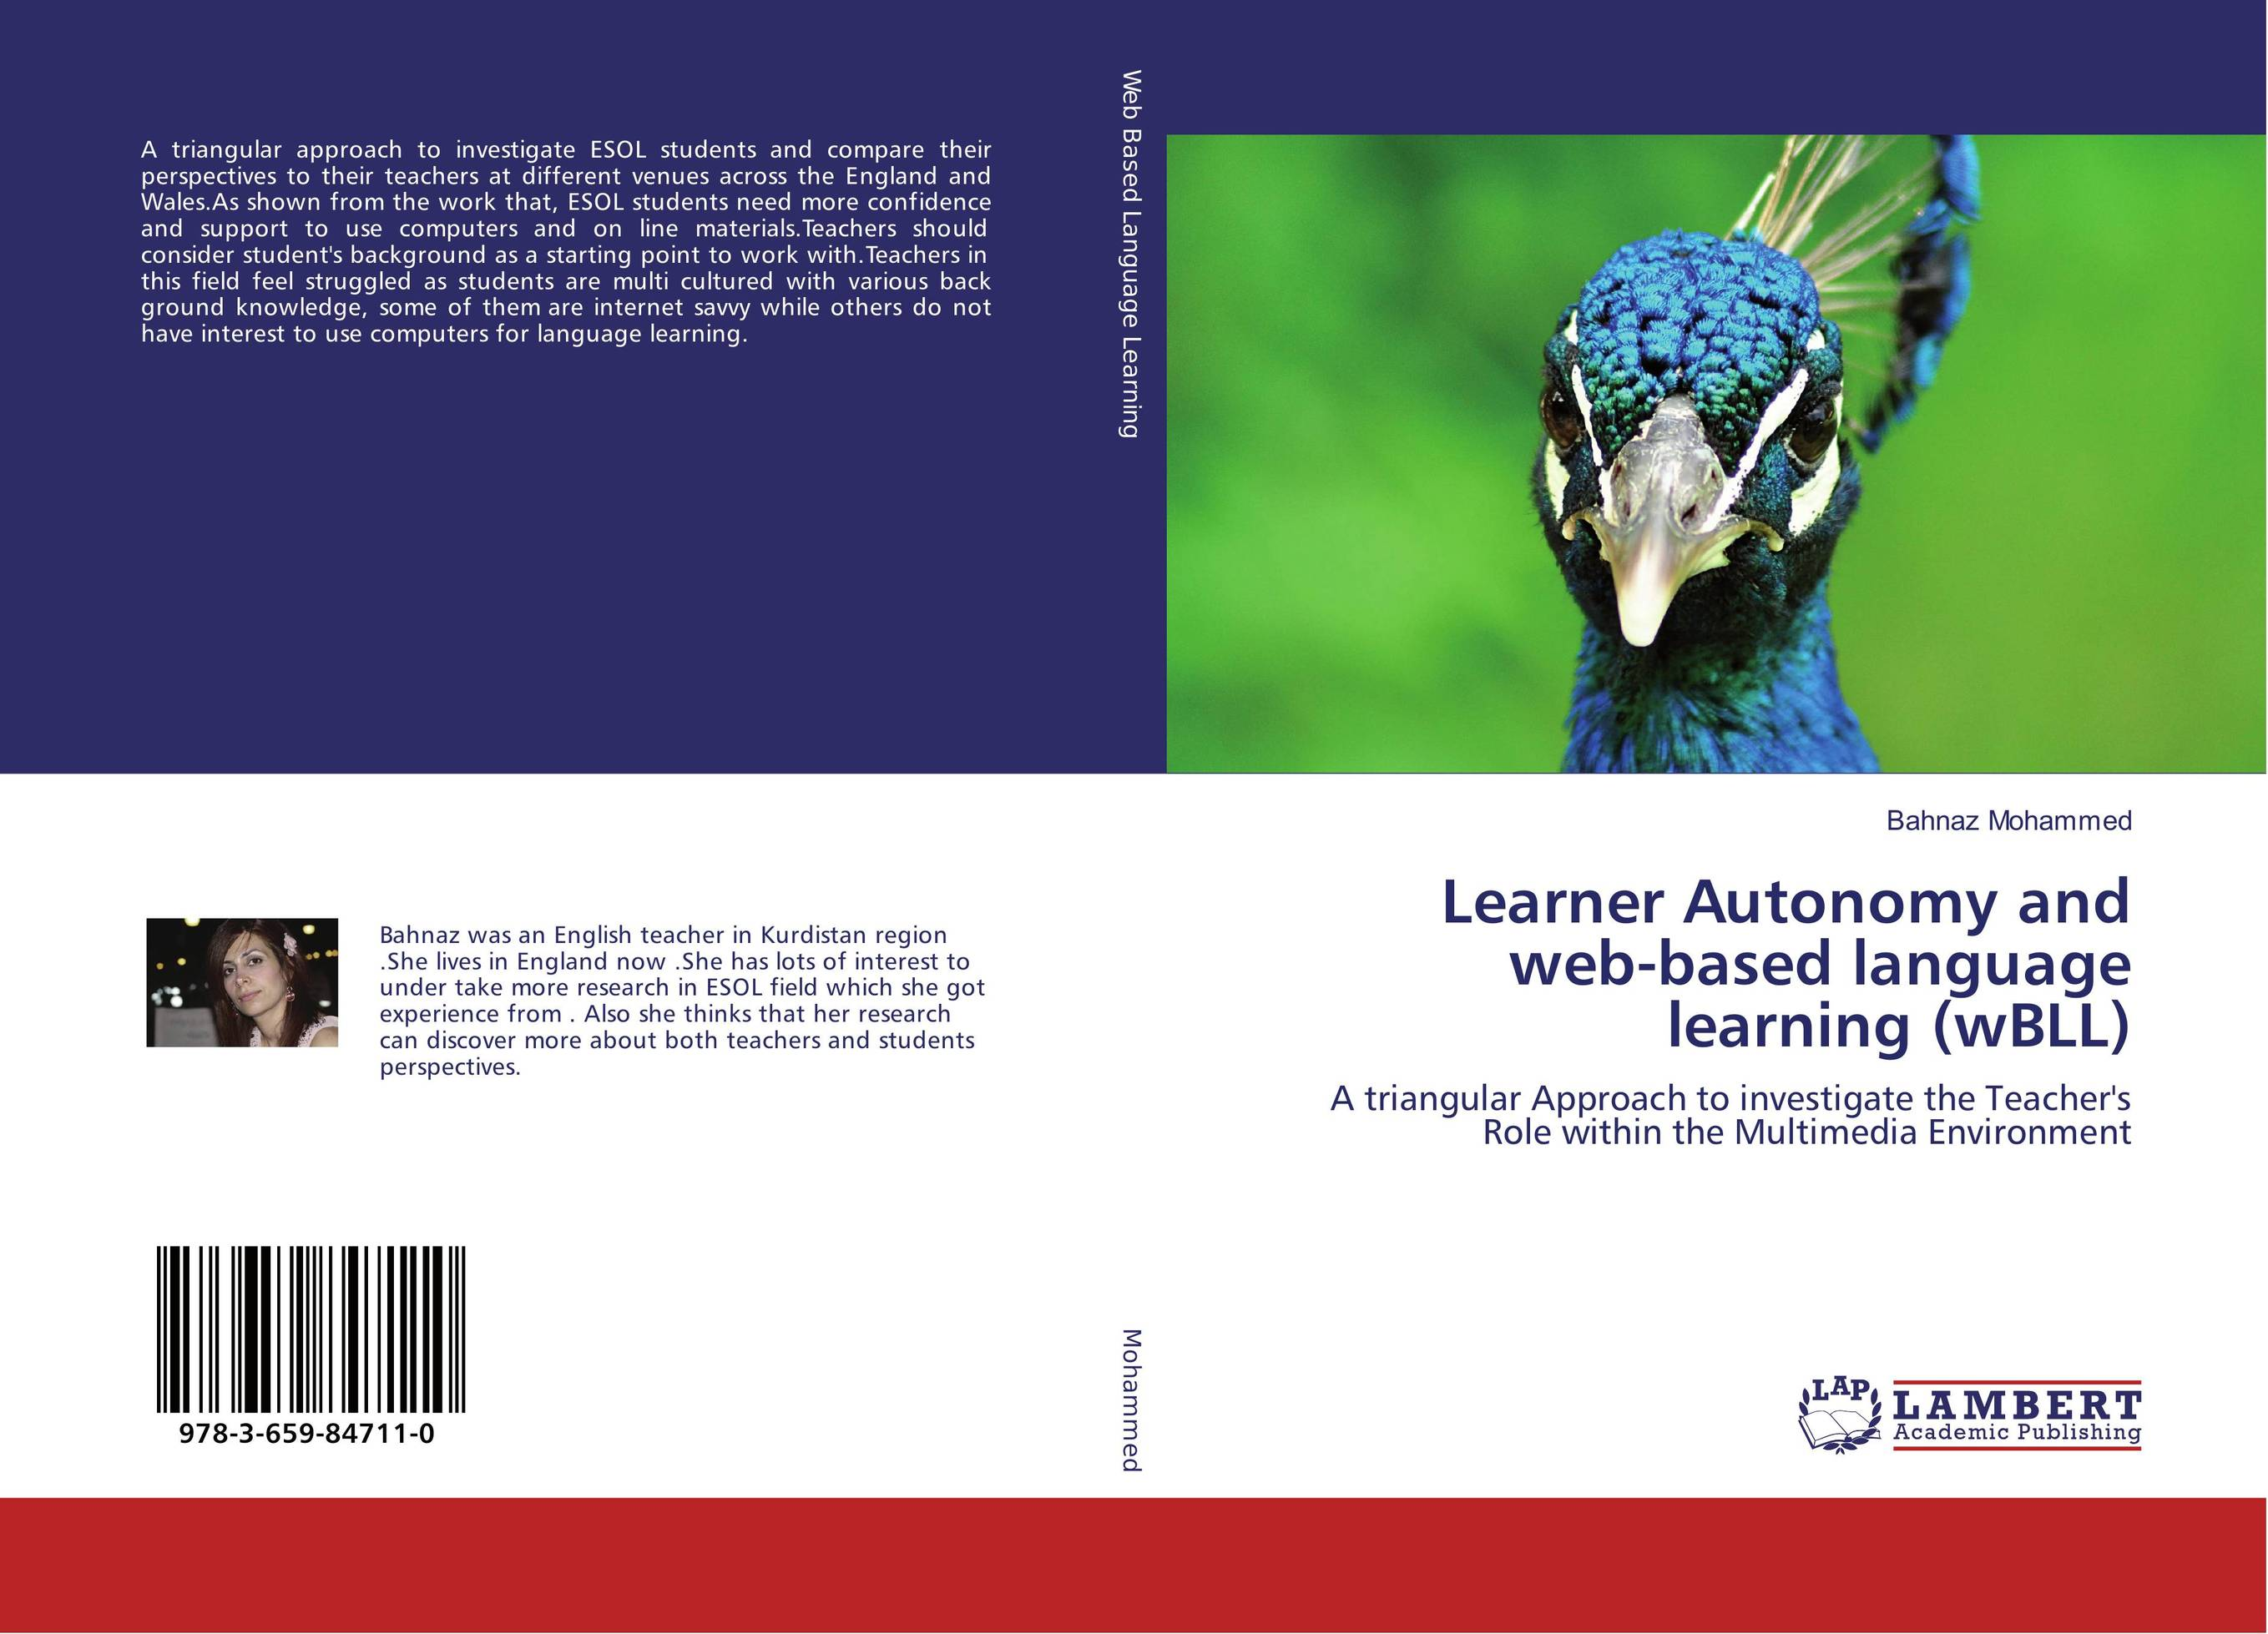 Learner Autonomy and web-based language learning (wBLL) learner autonomy and web based language learning wbll